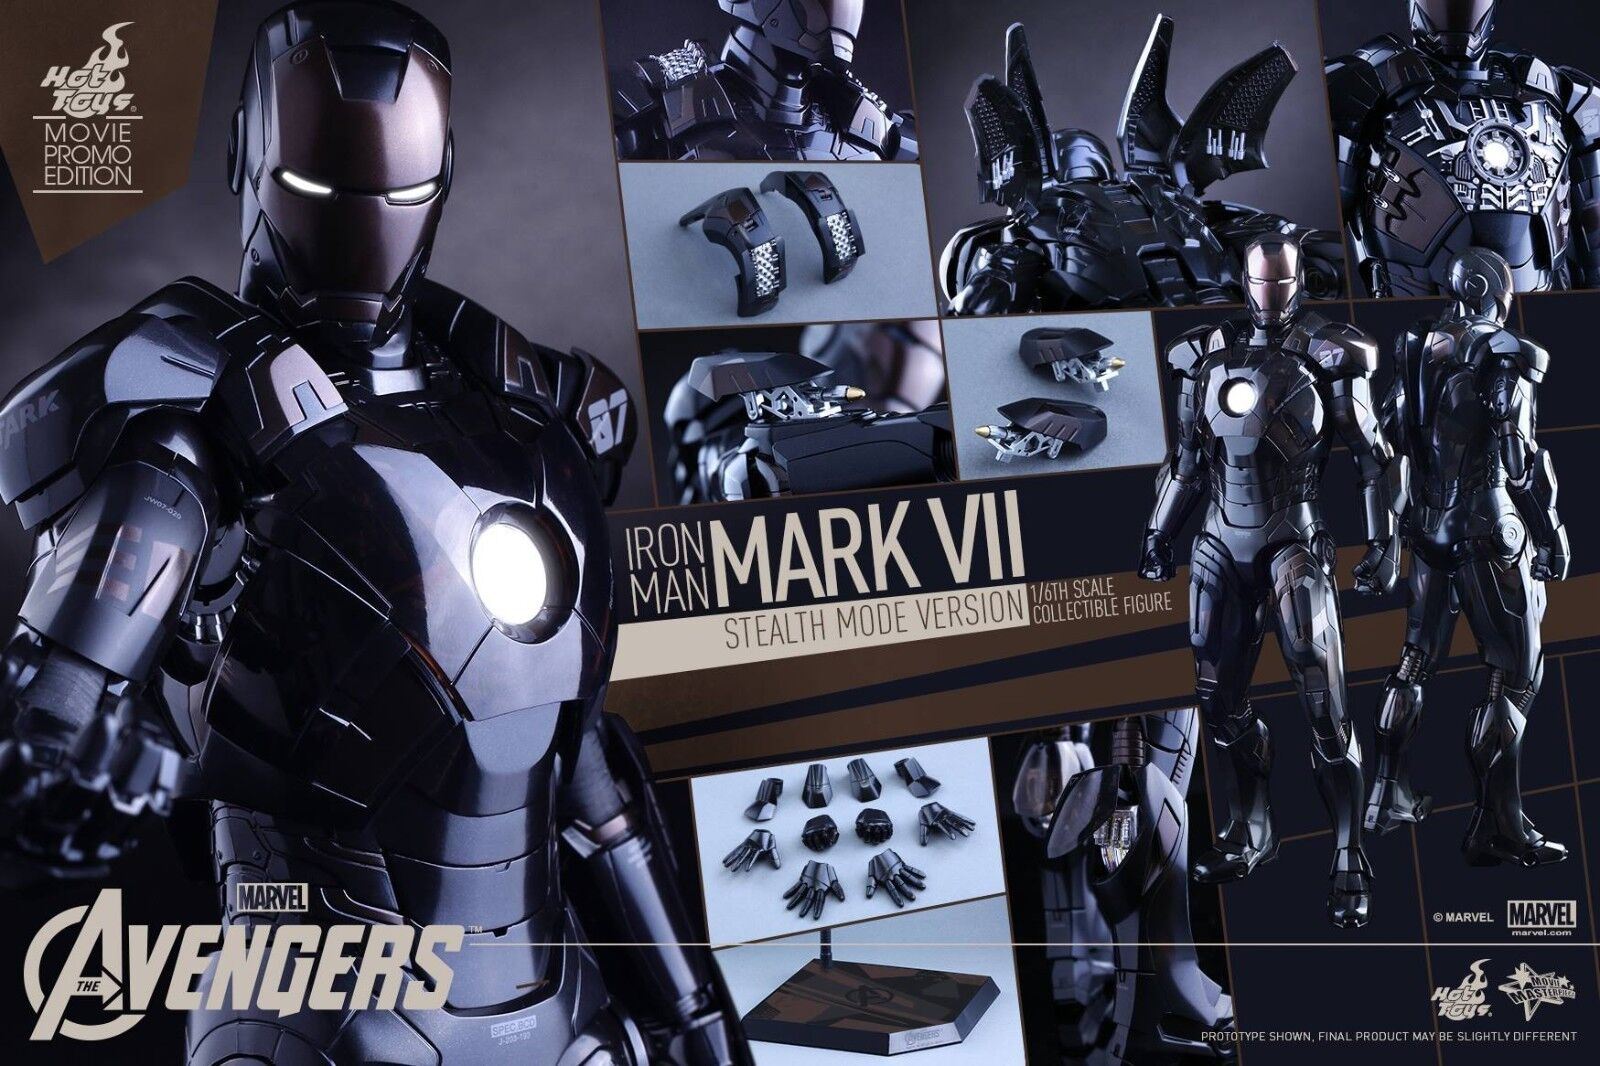 Hot Toys Iron Man Mark VII Stealth Mode Movie Promo Exclusive Sold Out Sideshow